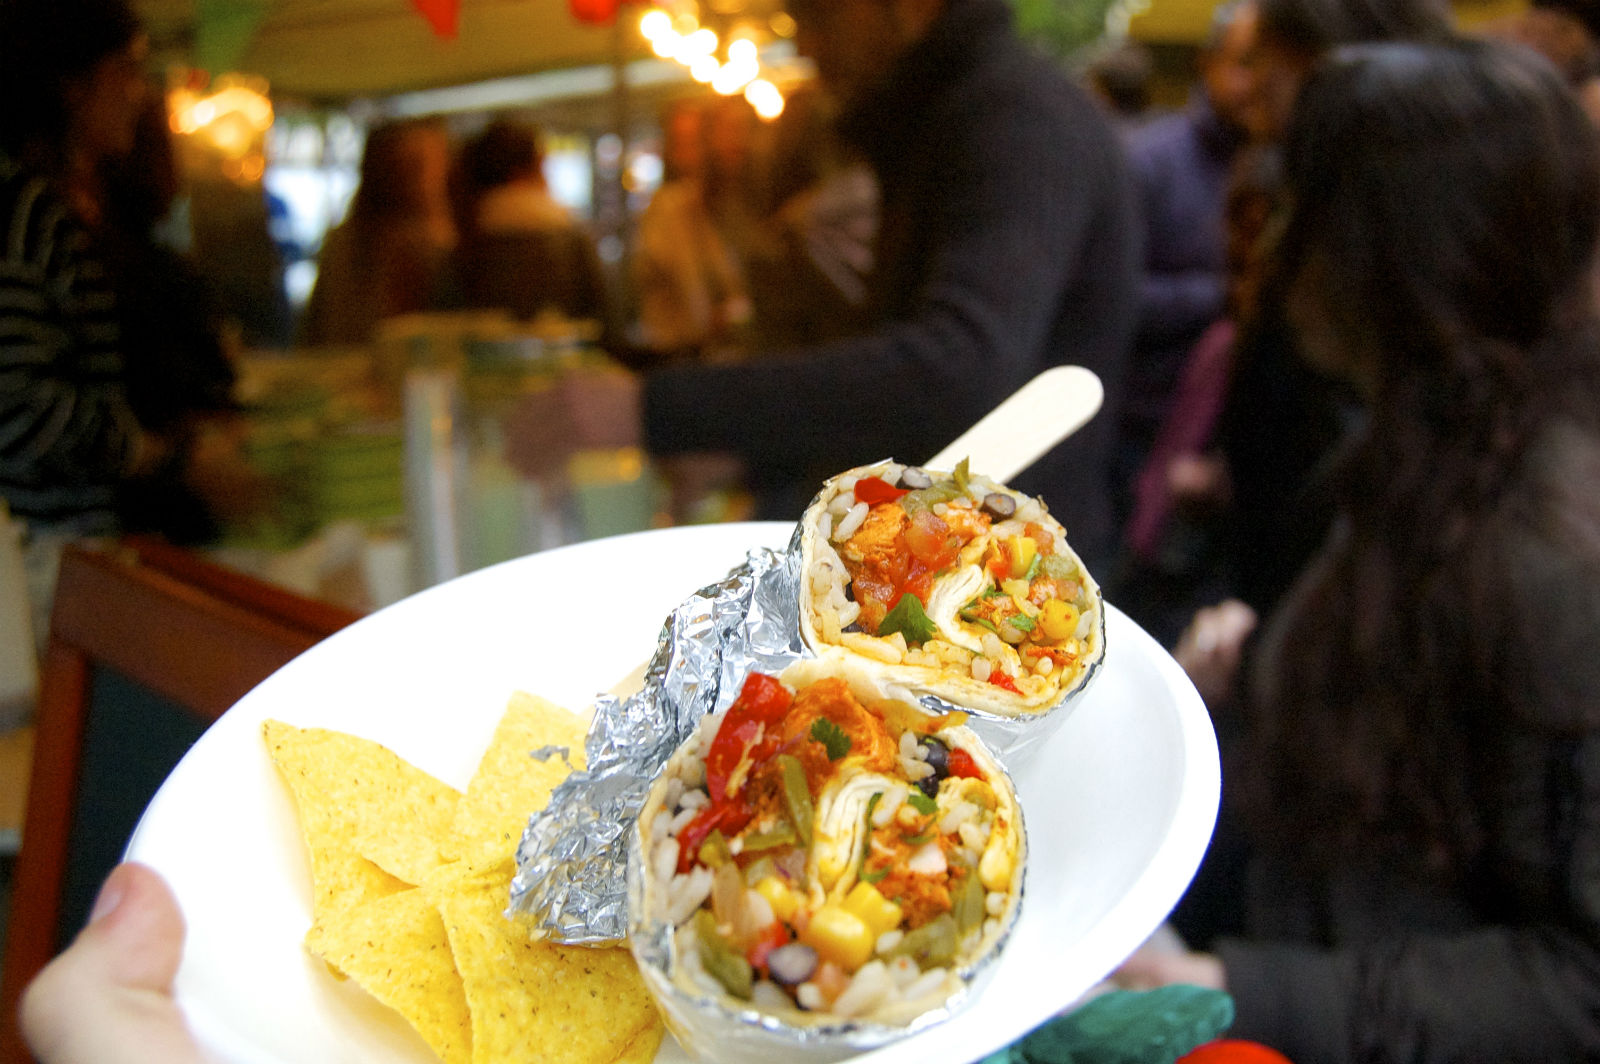 HiP Paris blog. Le Food Market. The discovery of a good burrito in Paris is a special moment